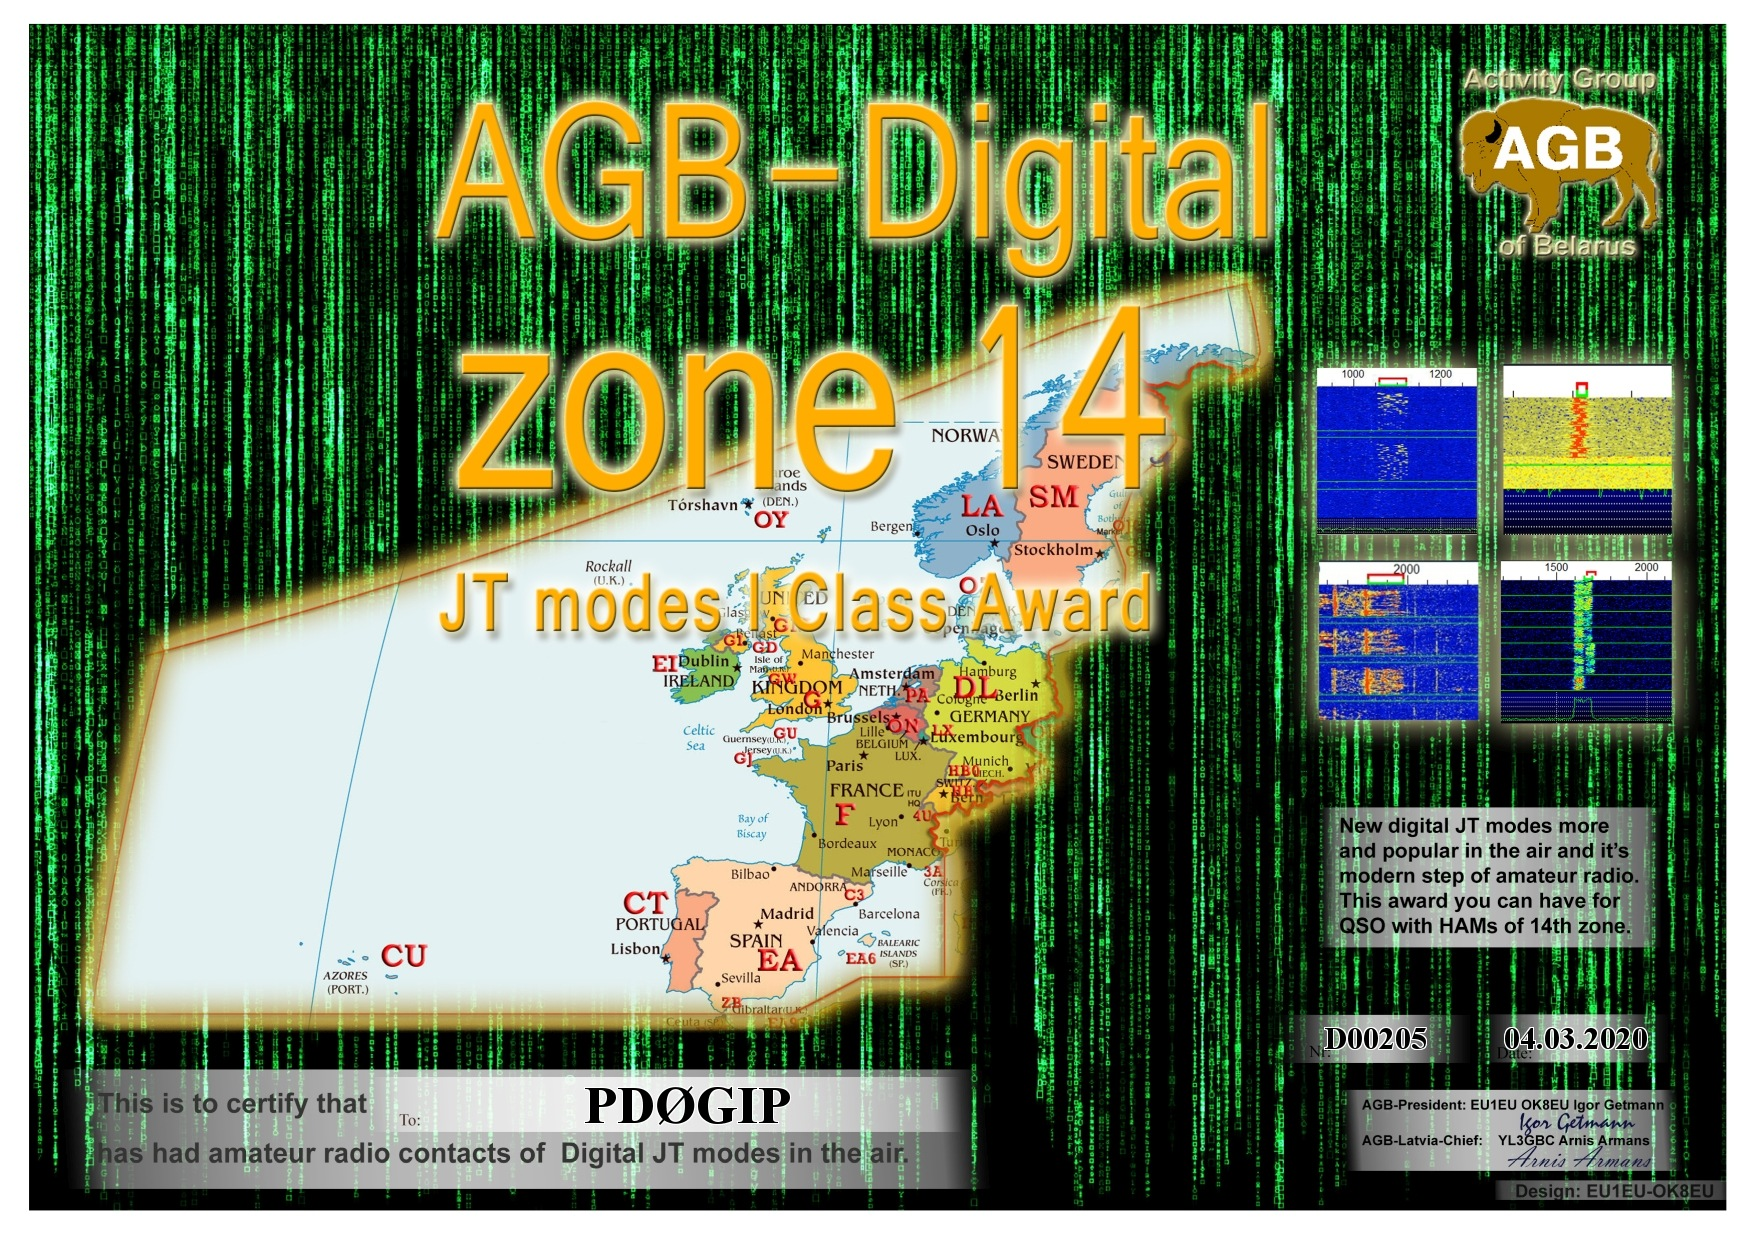 PD0GIP ZONE14 BASIC I AGB